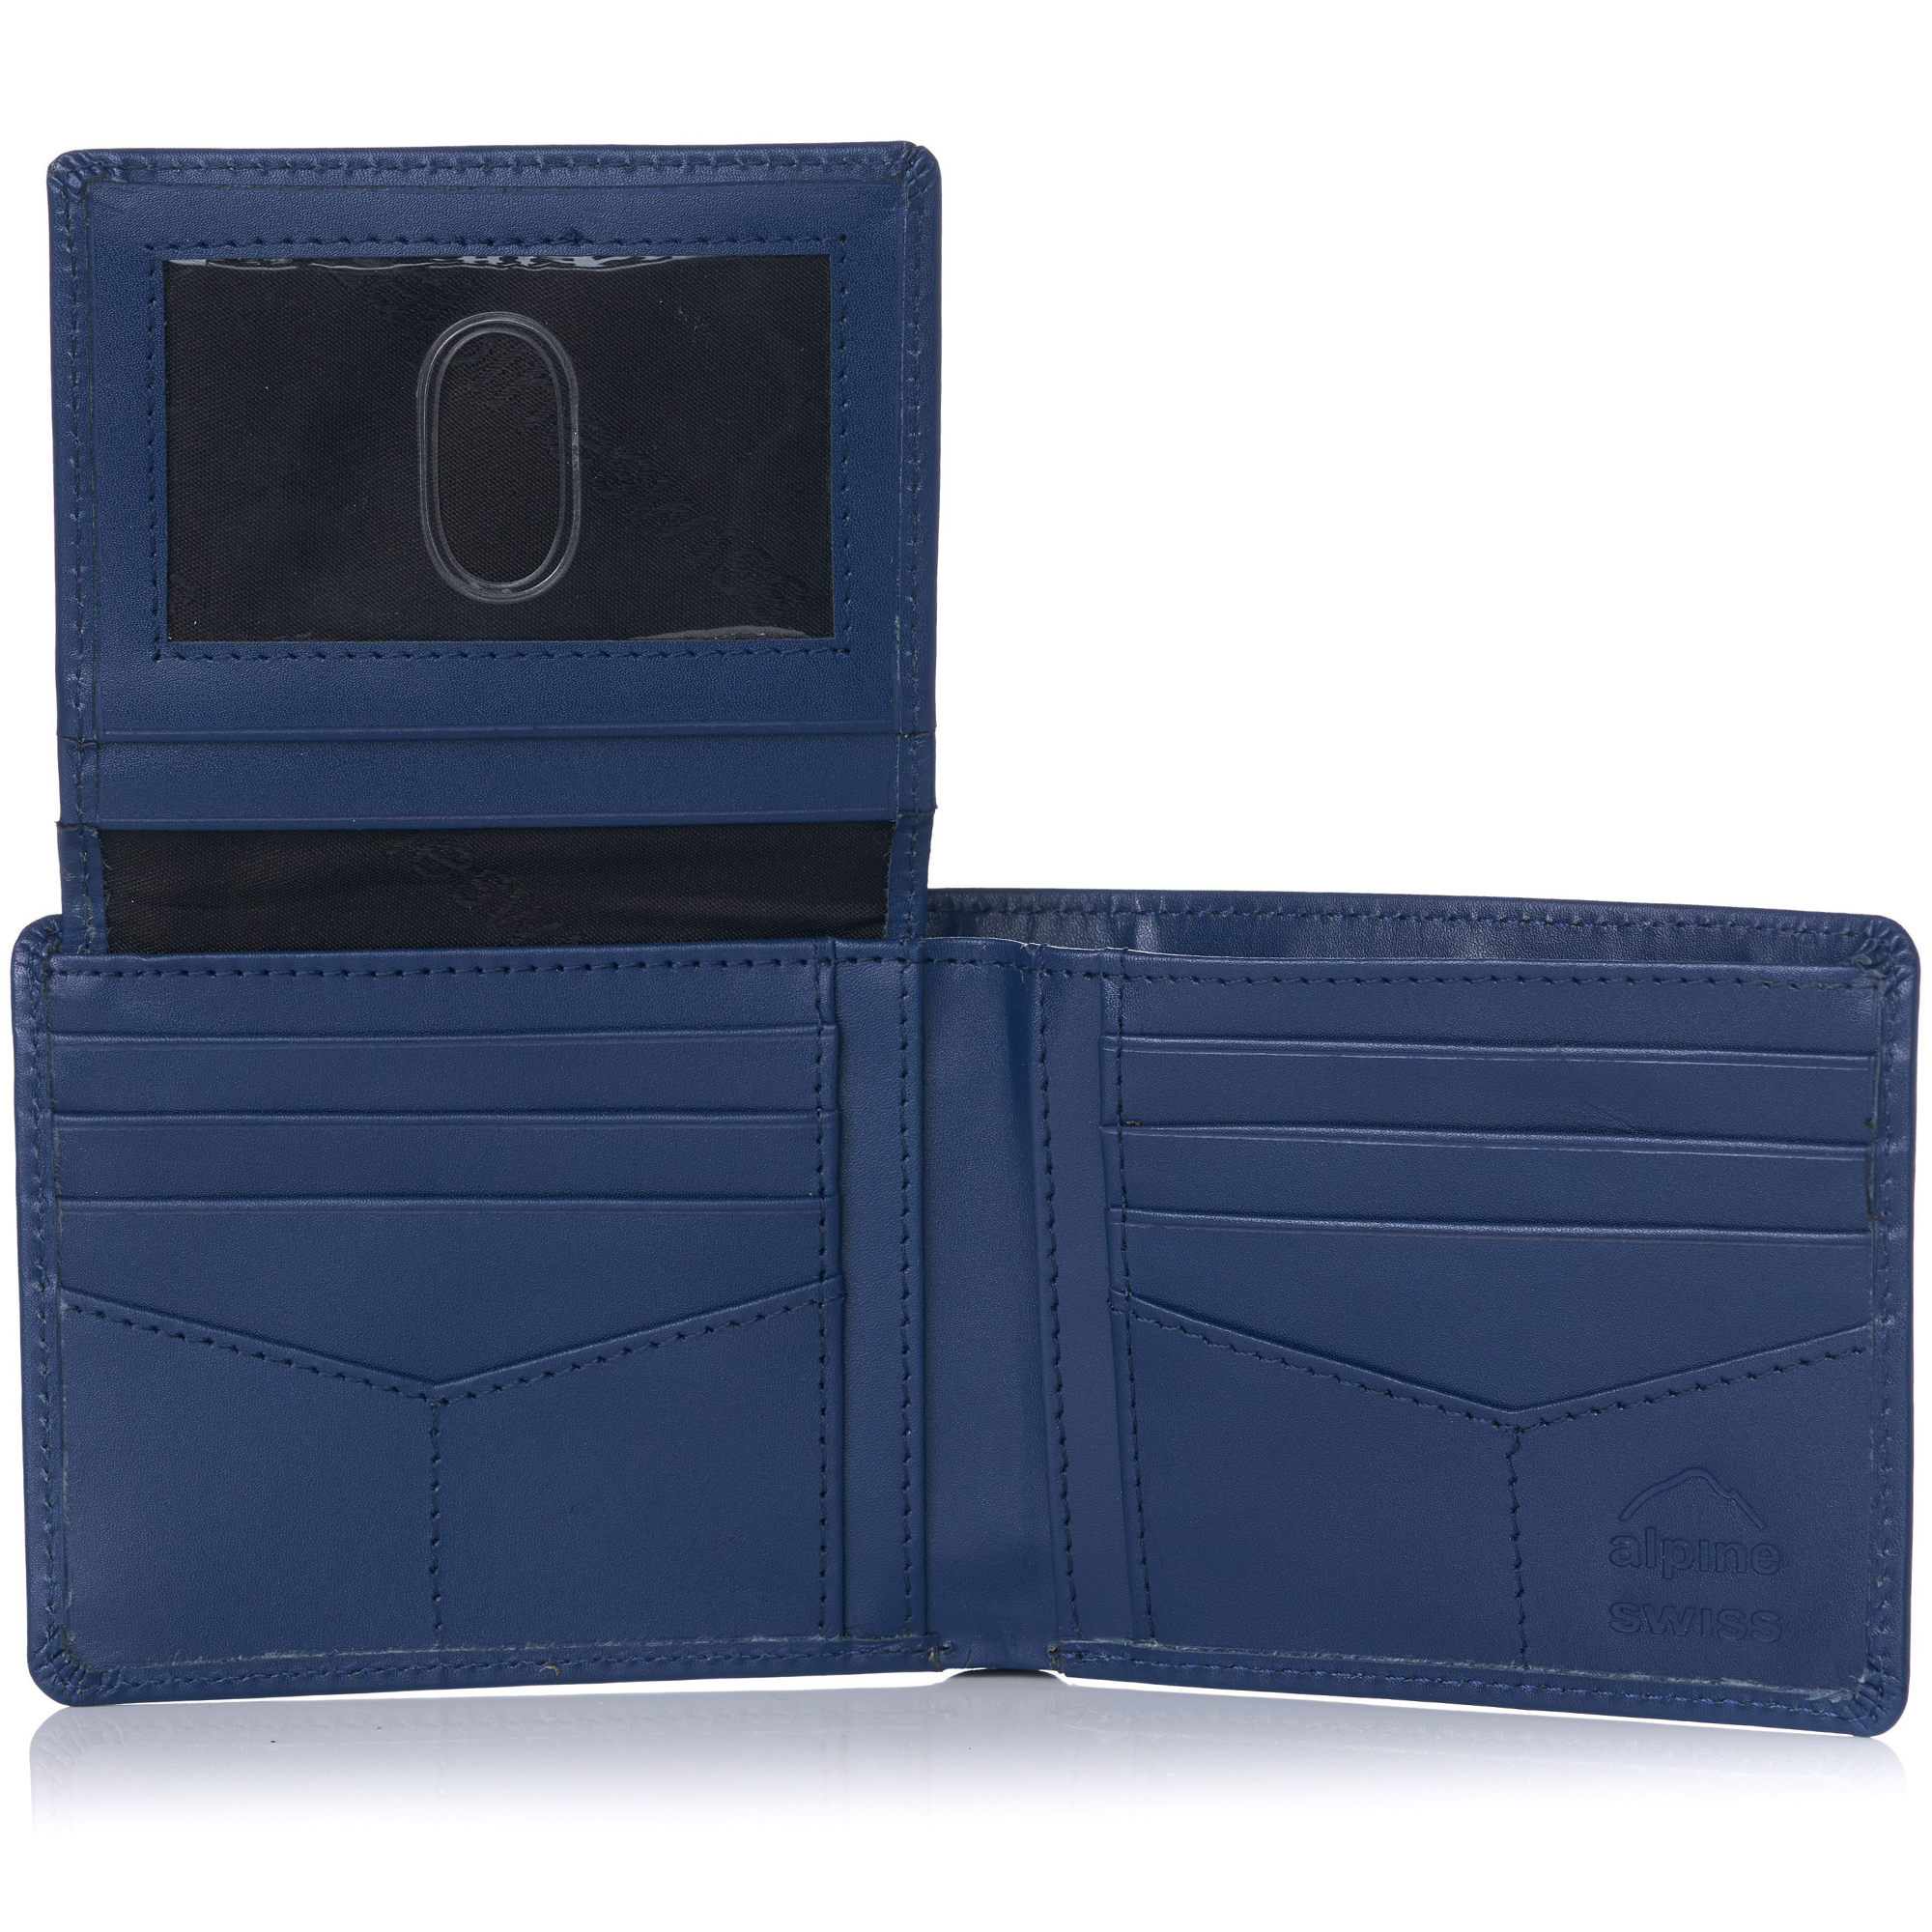 miniature 63 - Alpine-Swiss-RFID-Mens-Wallet-Deluxe-Capacity-Passcase-Bifold-Two-Bill-Sections